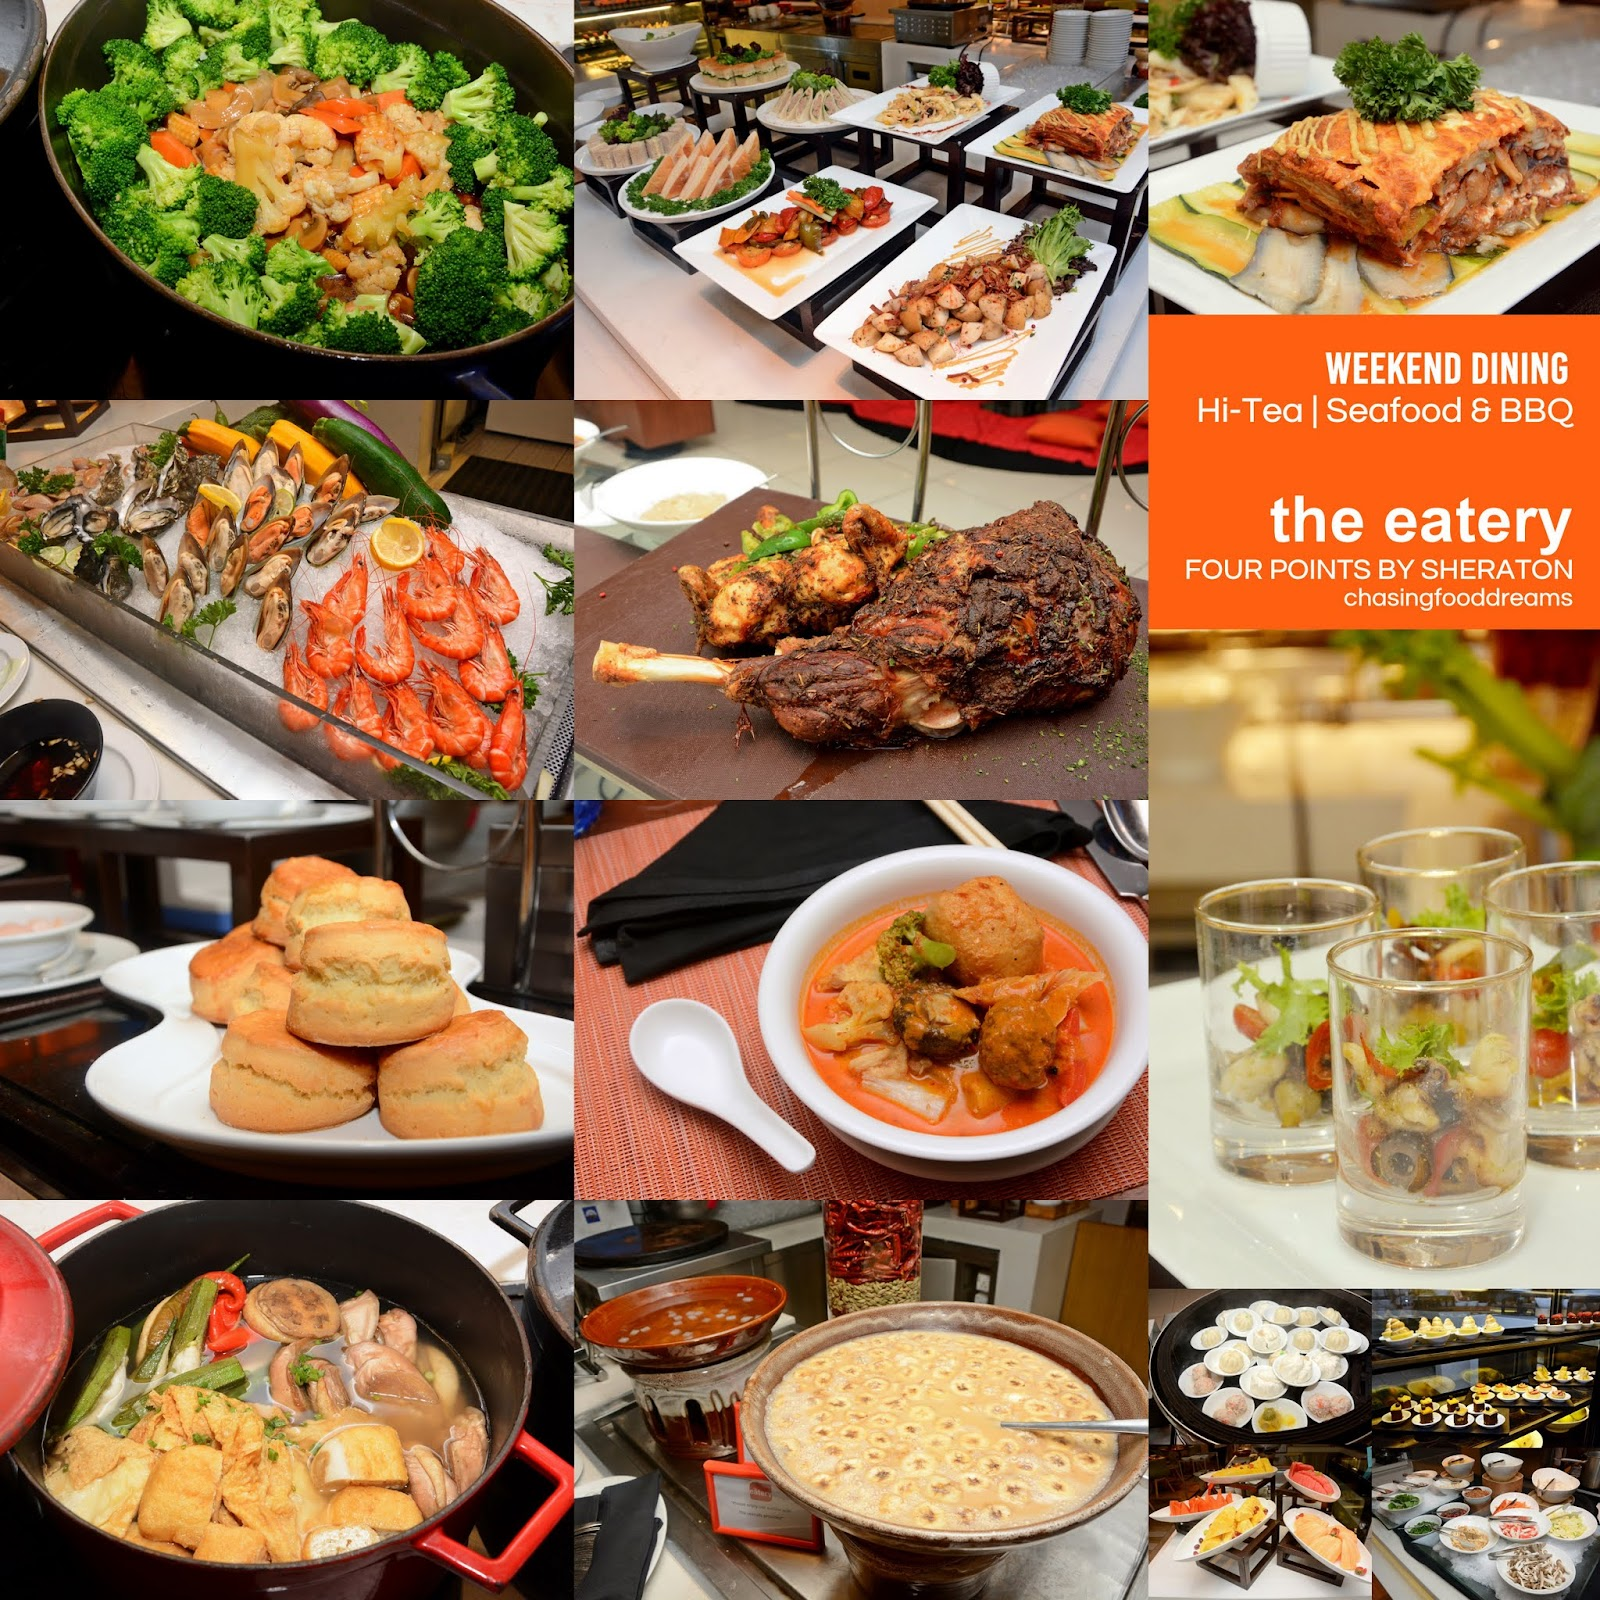 The Eatery Four Points By Sheraton Puchong